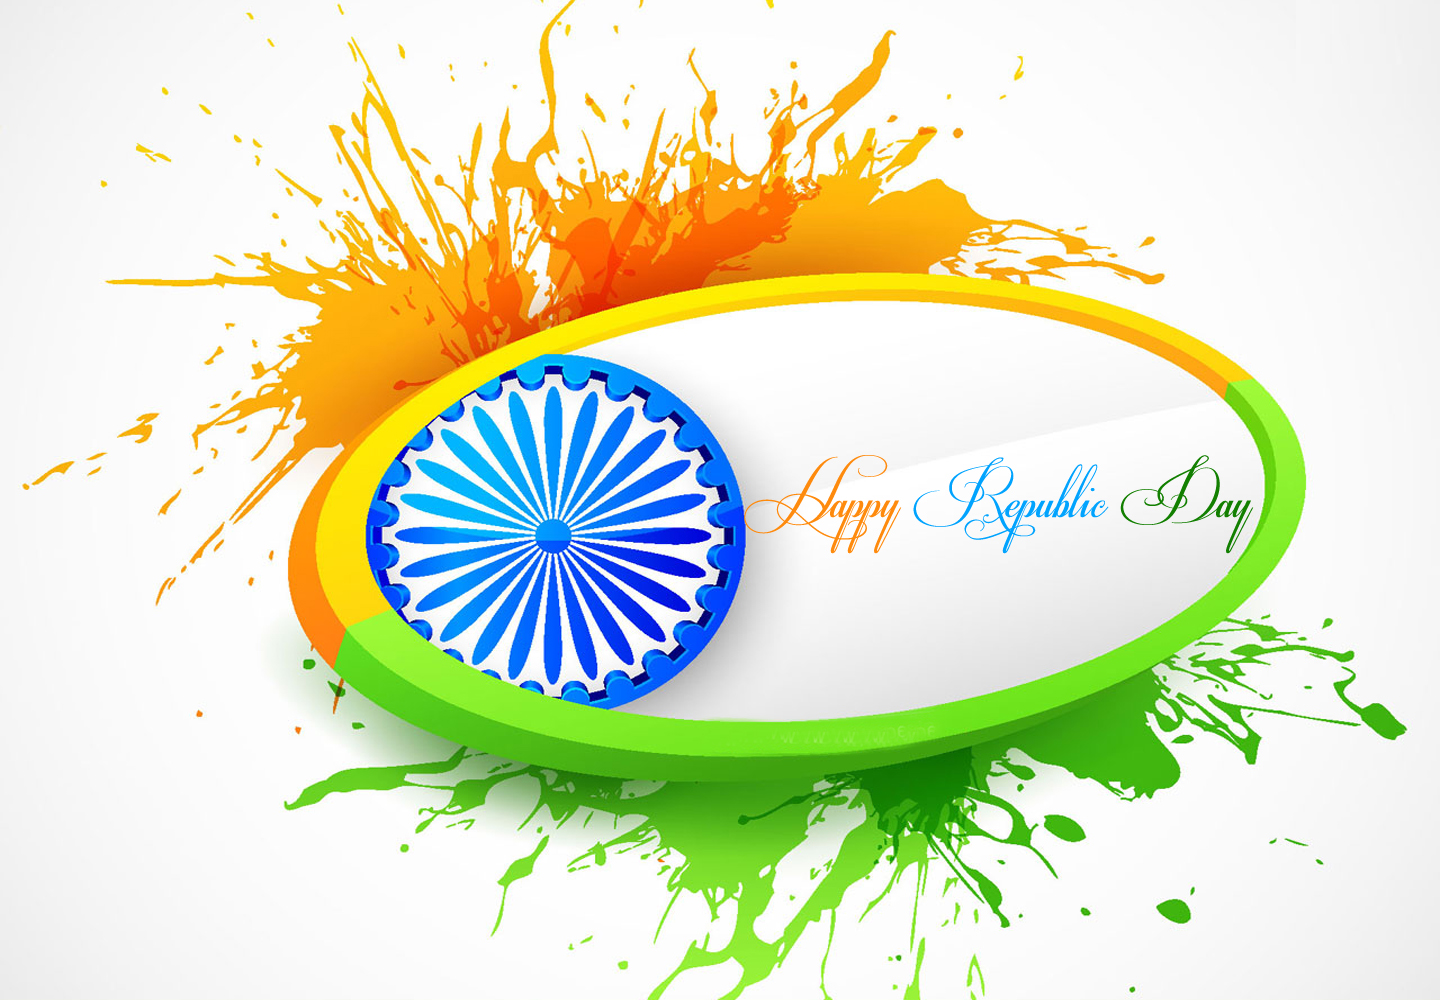 Wallpaper download of 2017 - Image Result For Republic Day 2017 Wallpapers